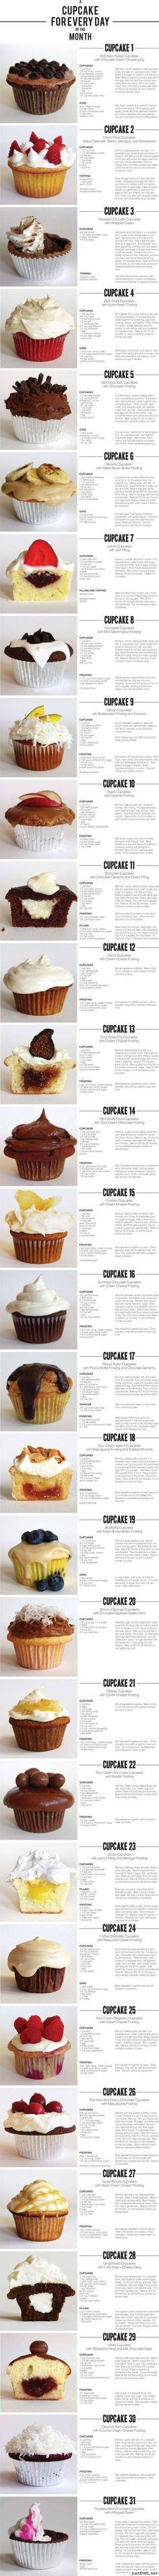 I would legitimately consider trading my soul for someone to make me some of these. Any takers?